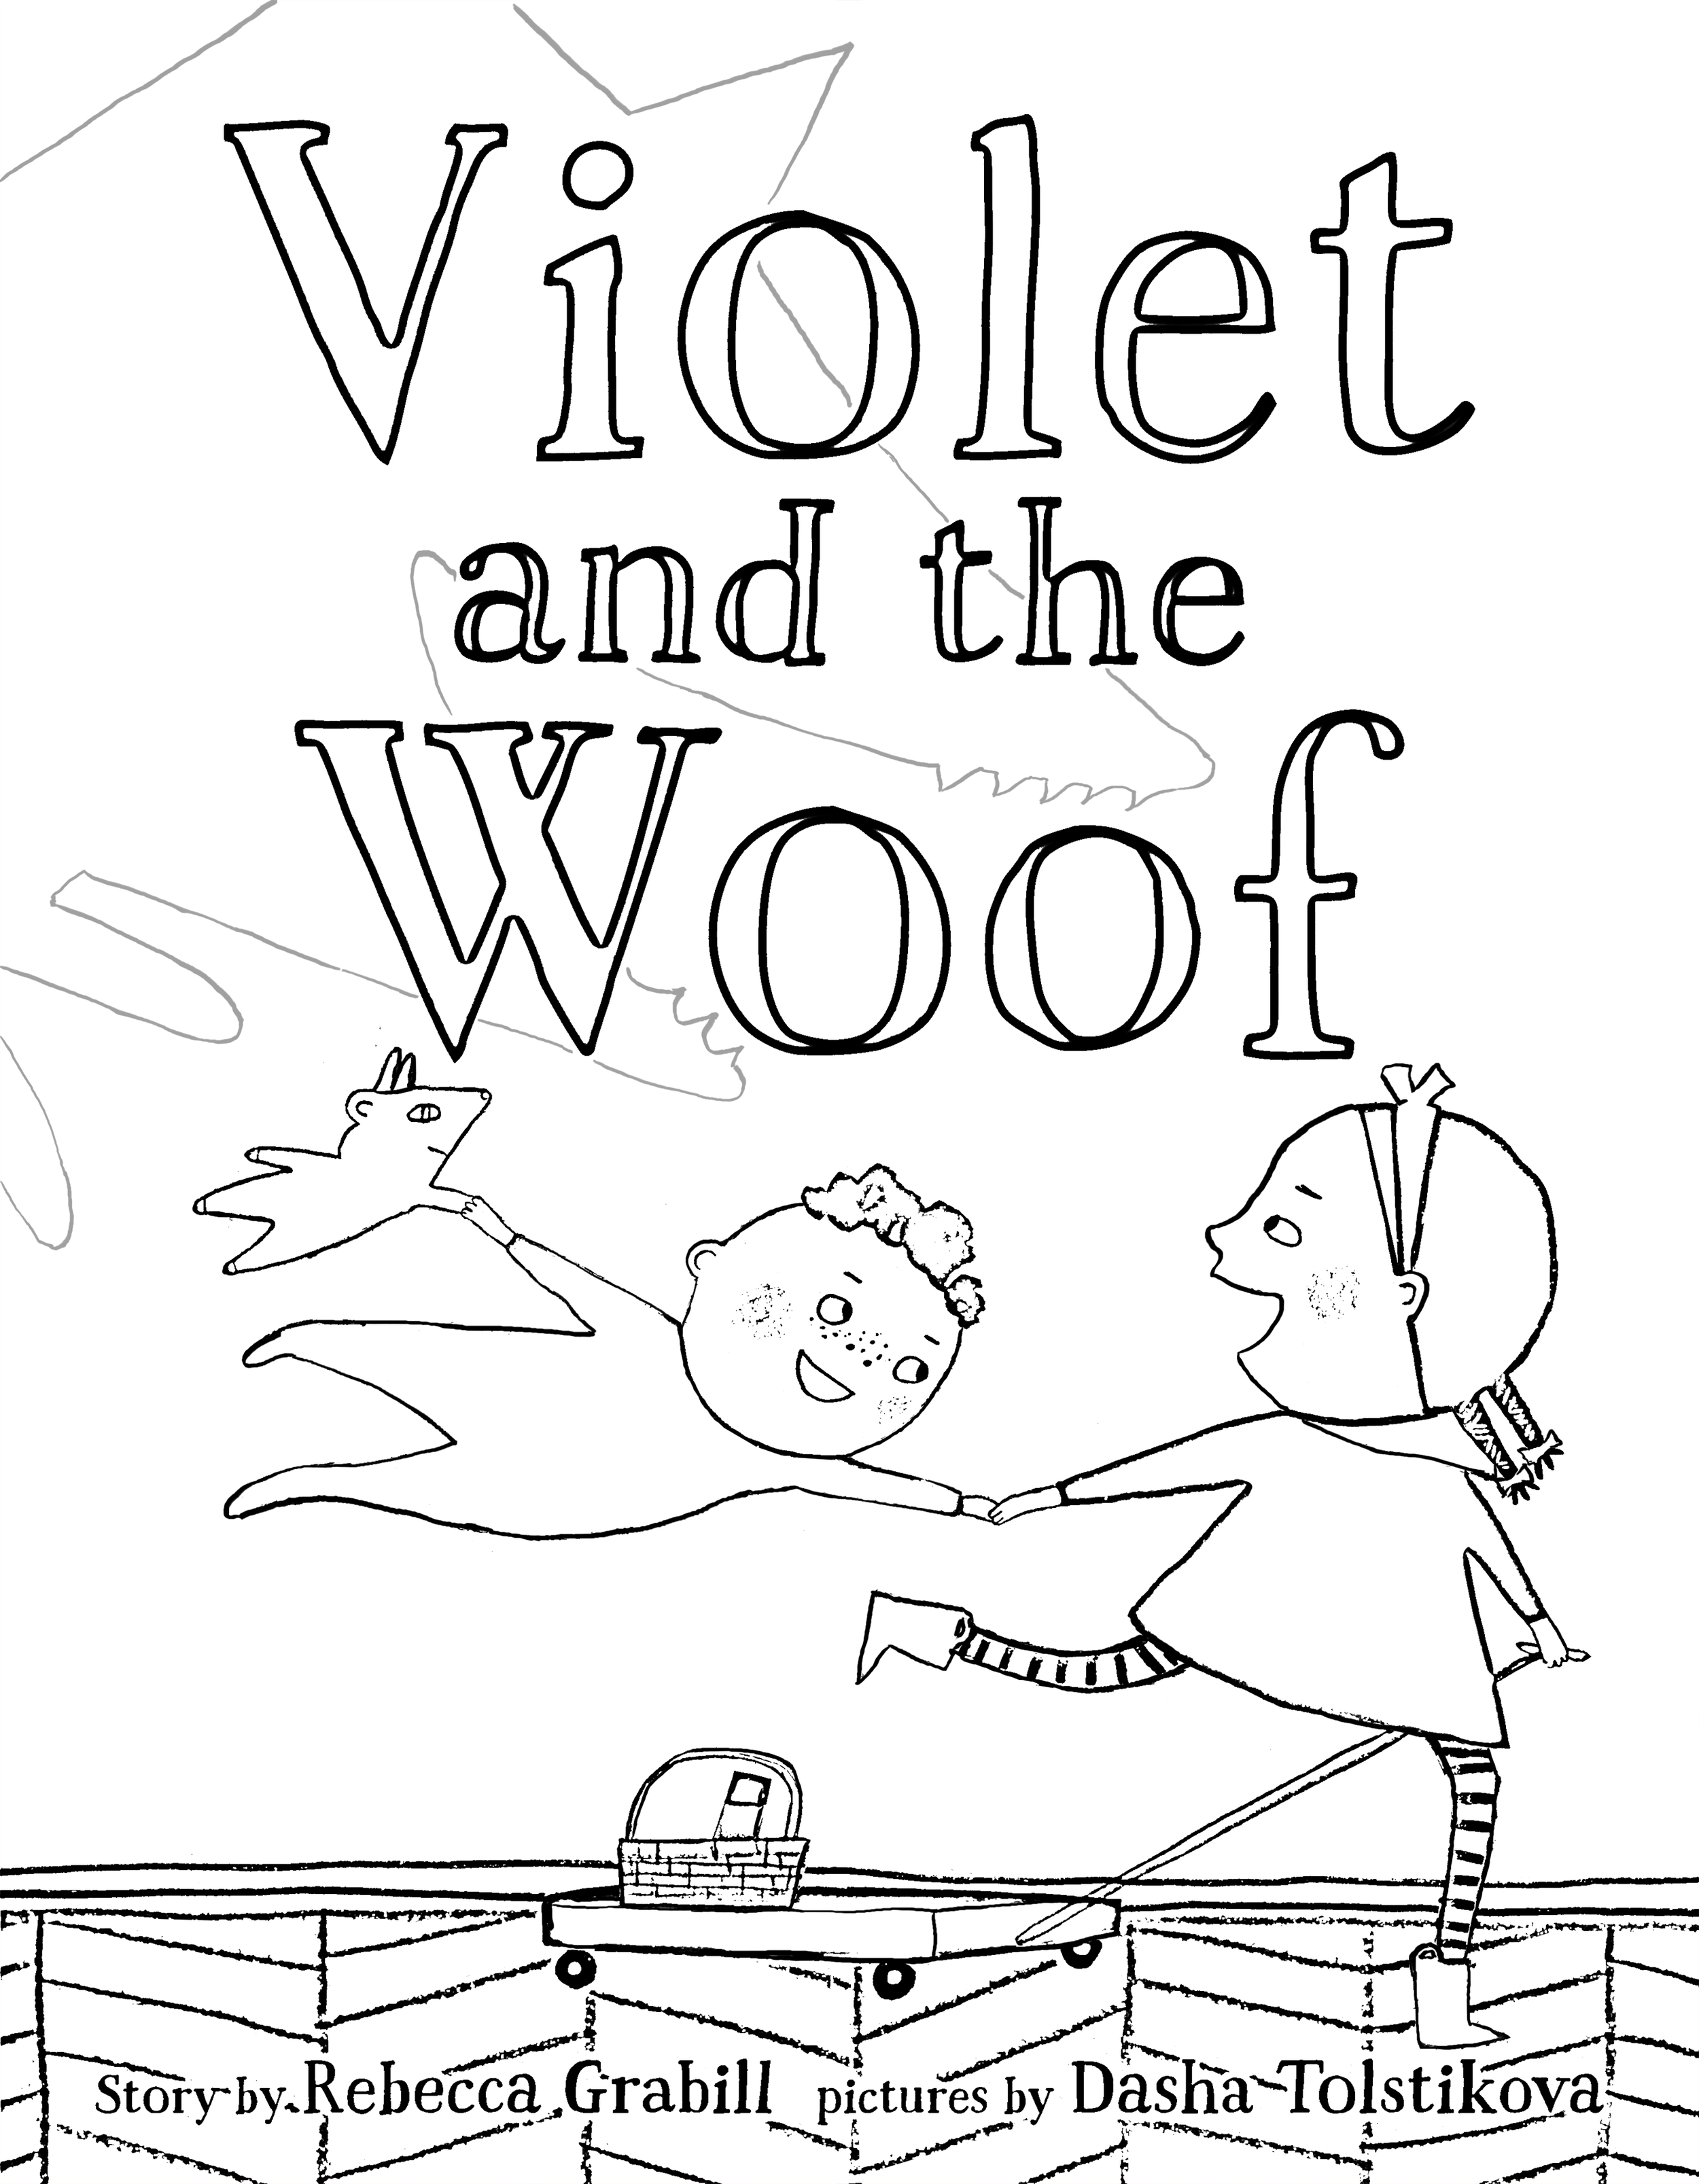 The cover as a free printable coloring page from Violet and the Woof by Rebecca Grabill and Dasha Tolstikova